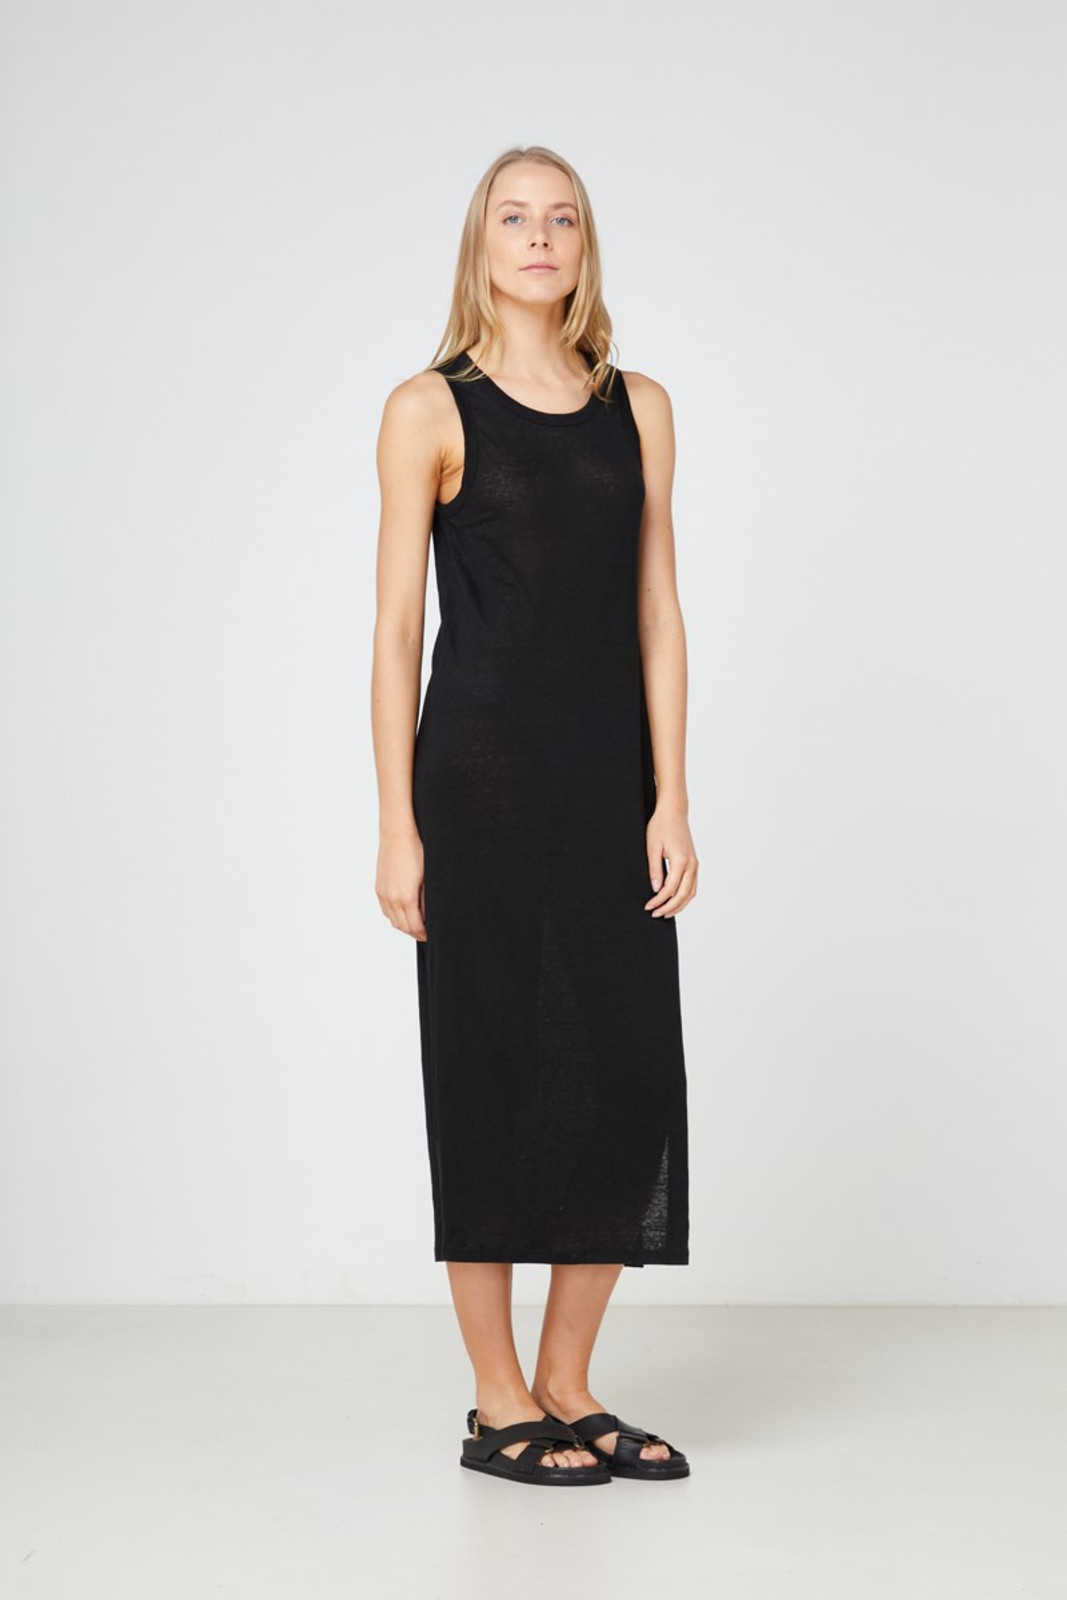 Elka Collective EC Linen Tank Dress 2.0 Black  1